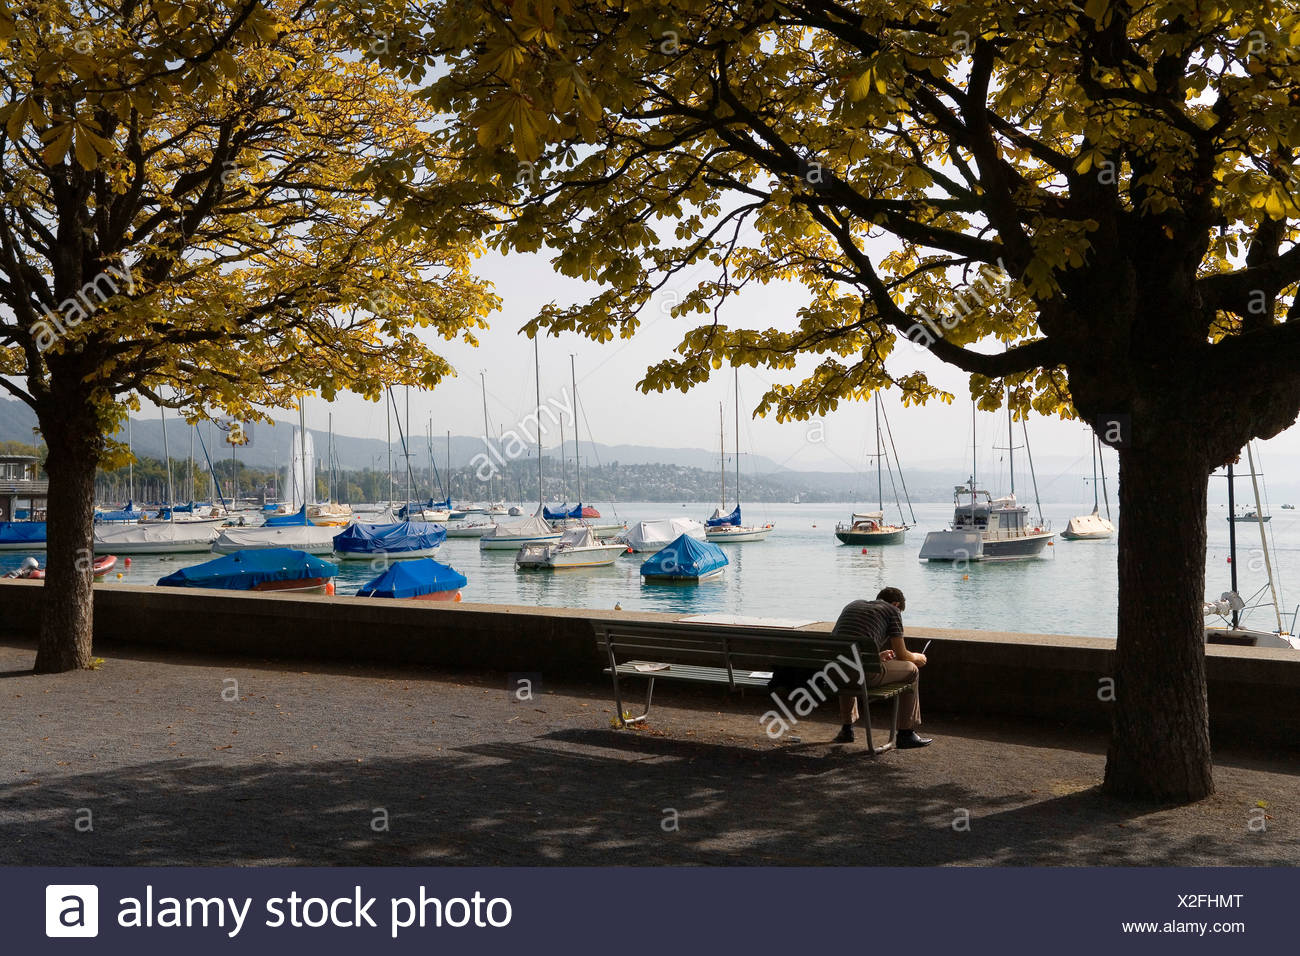 Autumnal mood on a boat harbour near Zurich, Switzerland, Europe - Stock Image